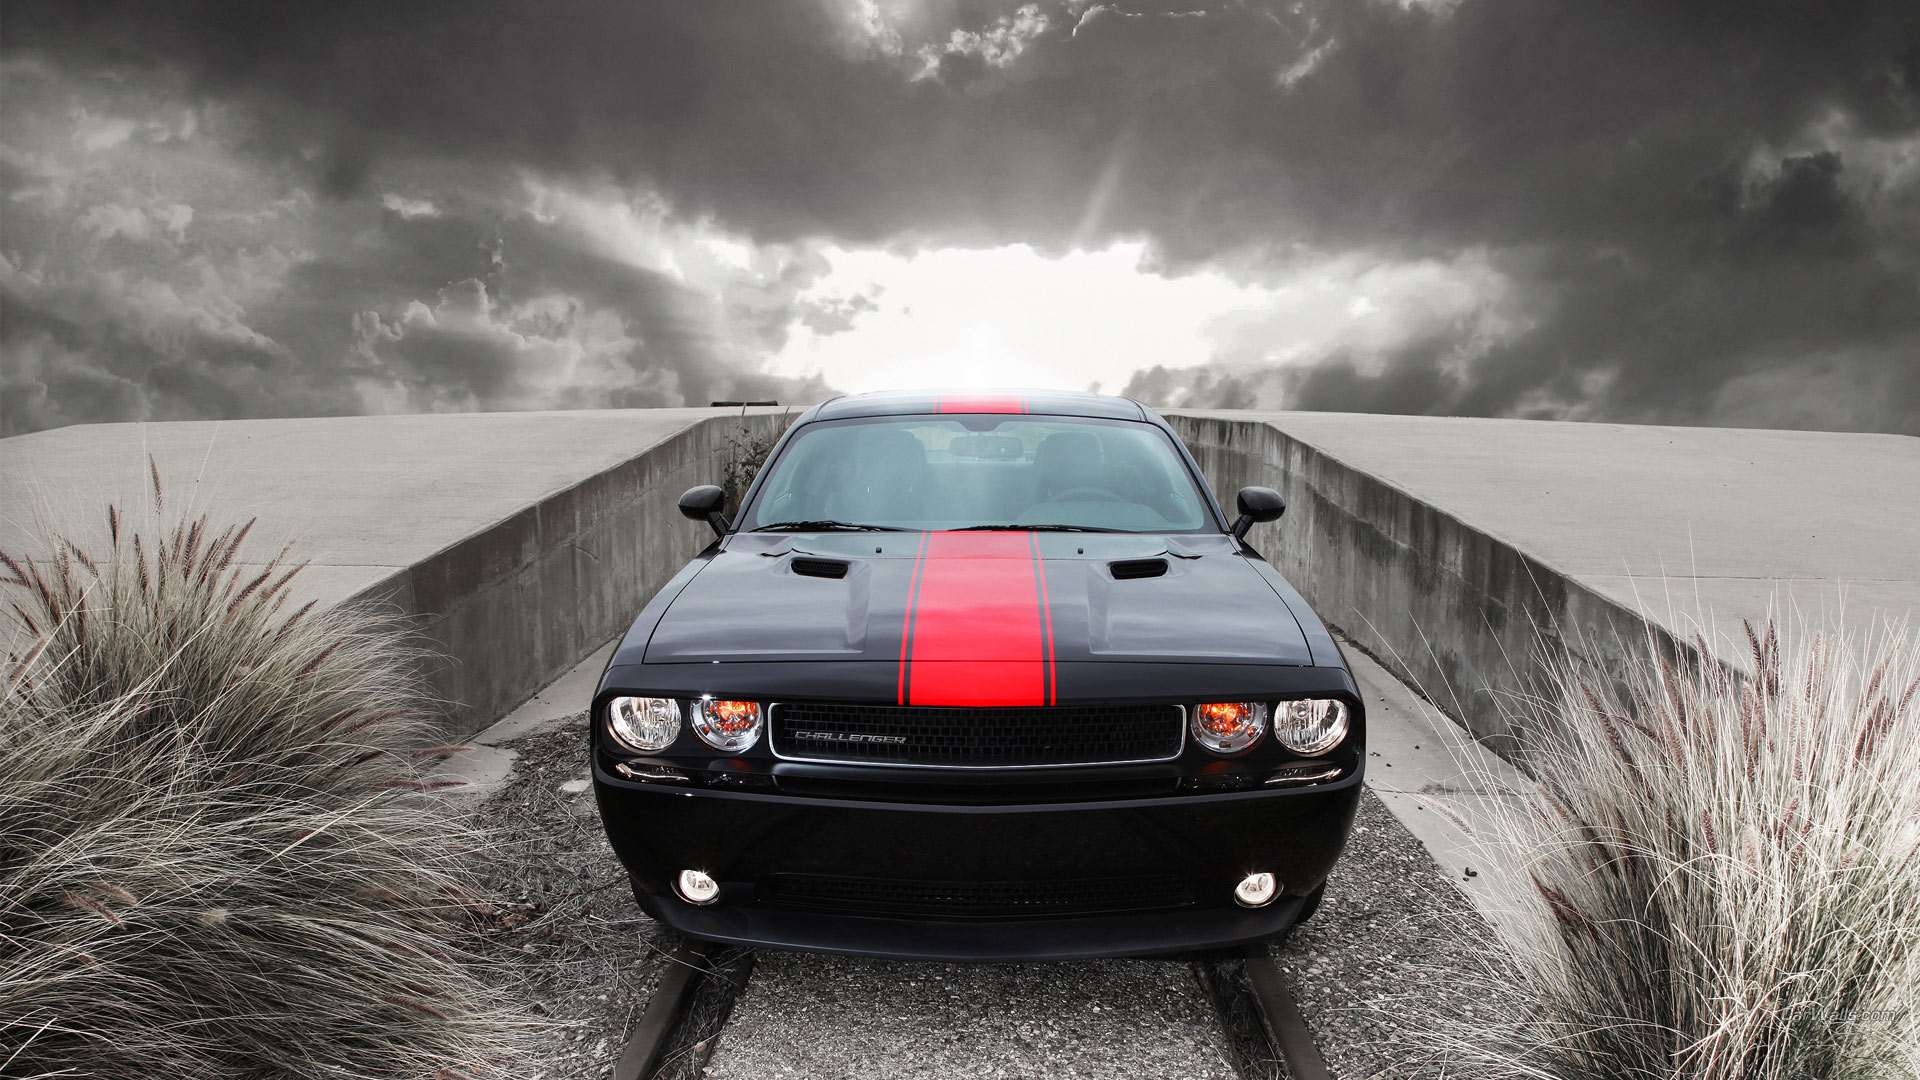 1920x1080 - Dodge Challenger Rallye Wallpapers 22